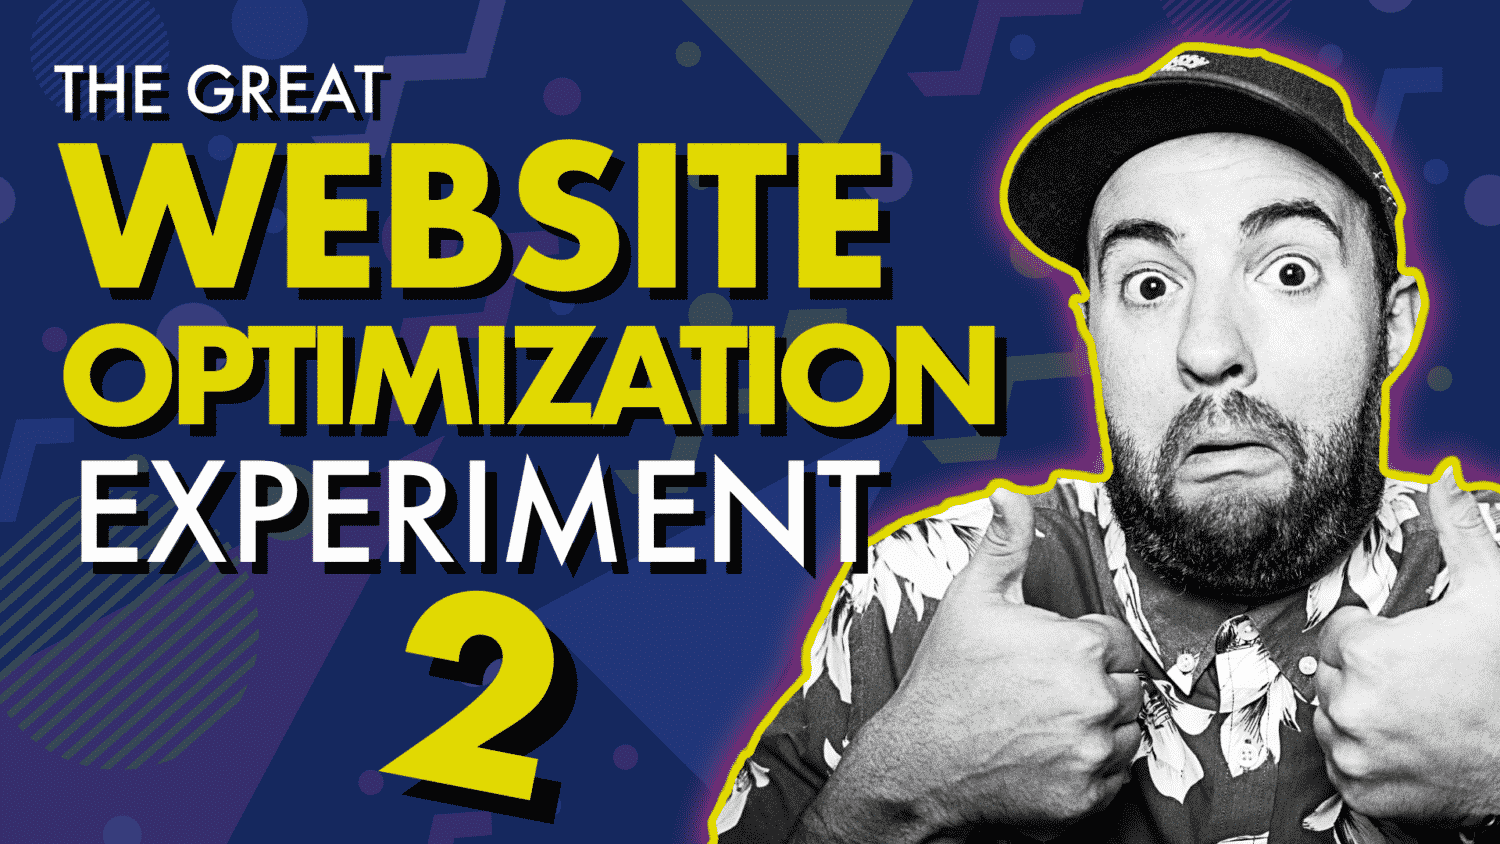 The Great Website Optimization Experiment 2